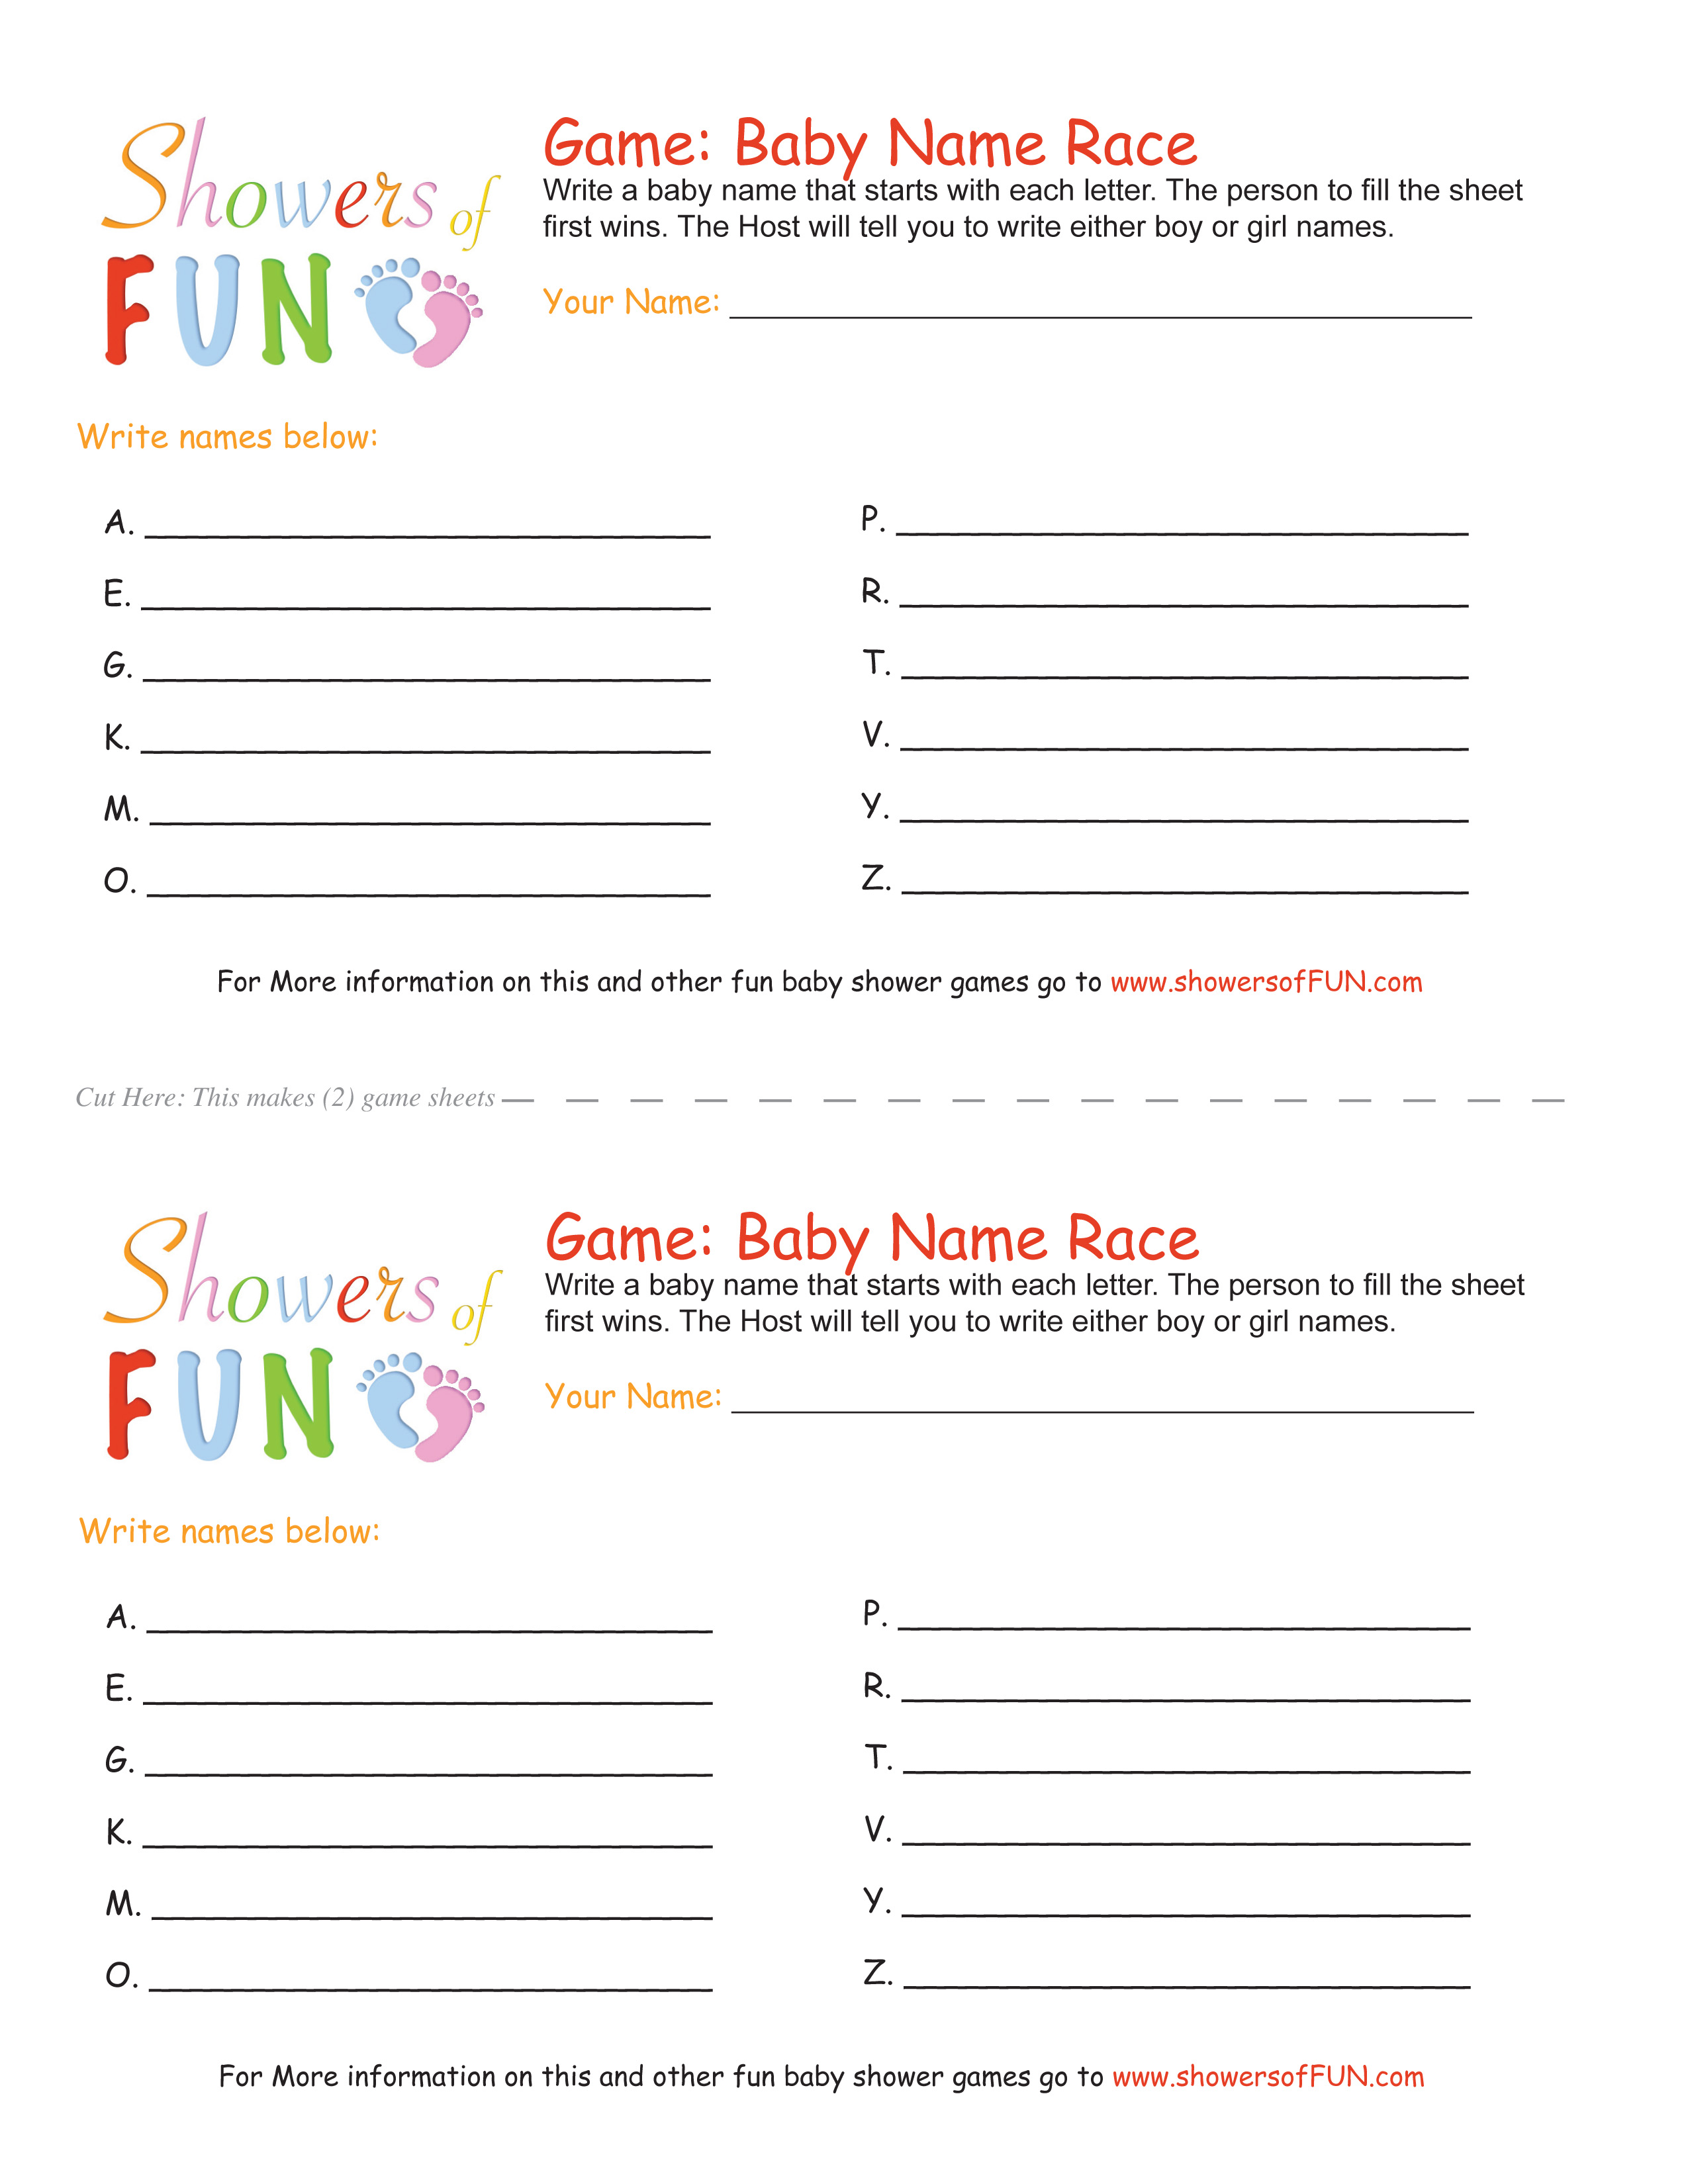 Baby Name Race Baby Shower Game